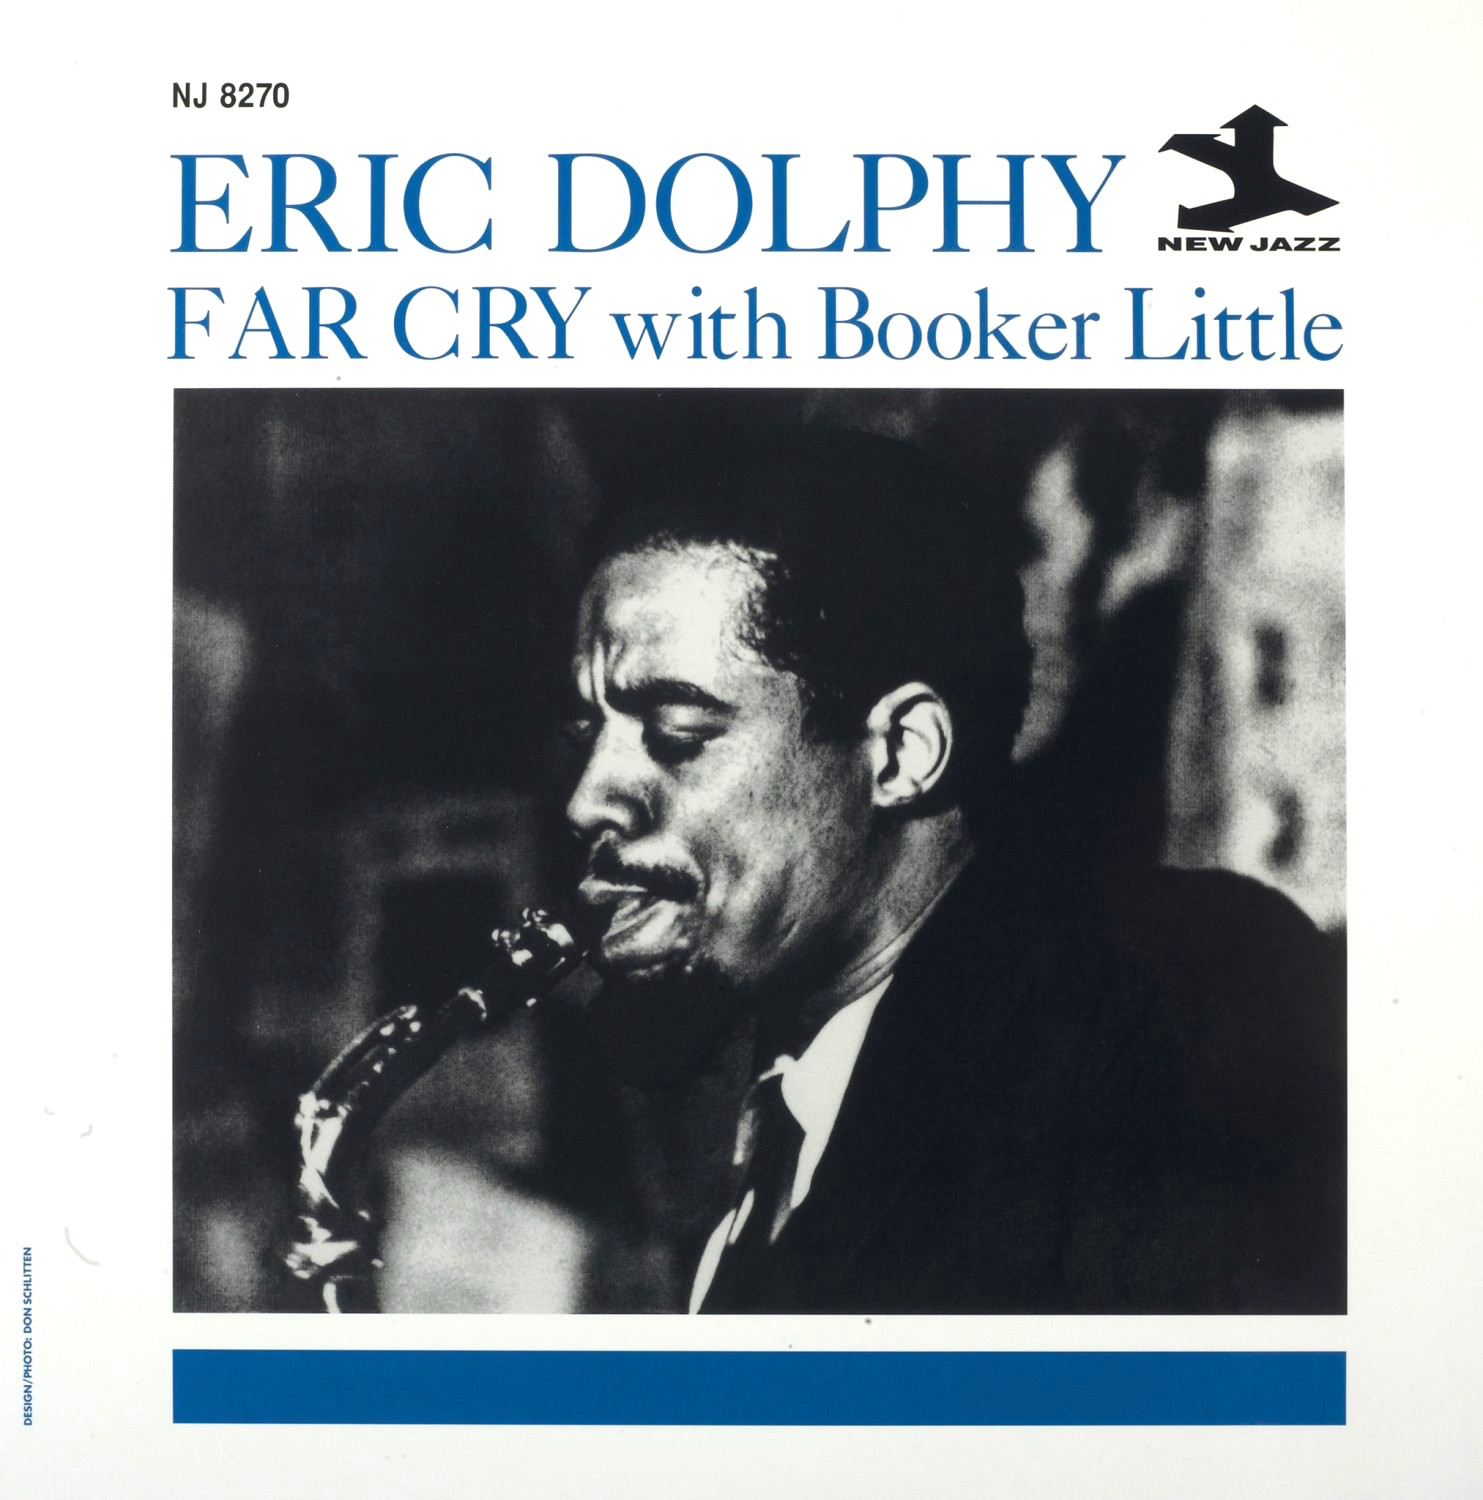 Eric Dolphy - Far Cry (200g 33rpm limited)